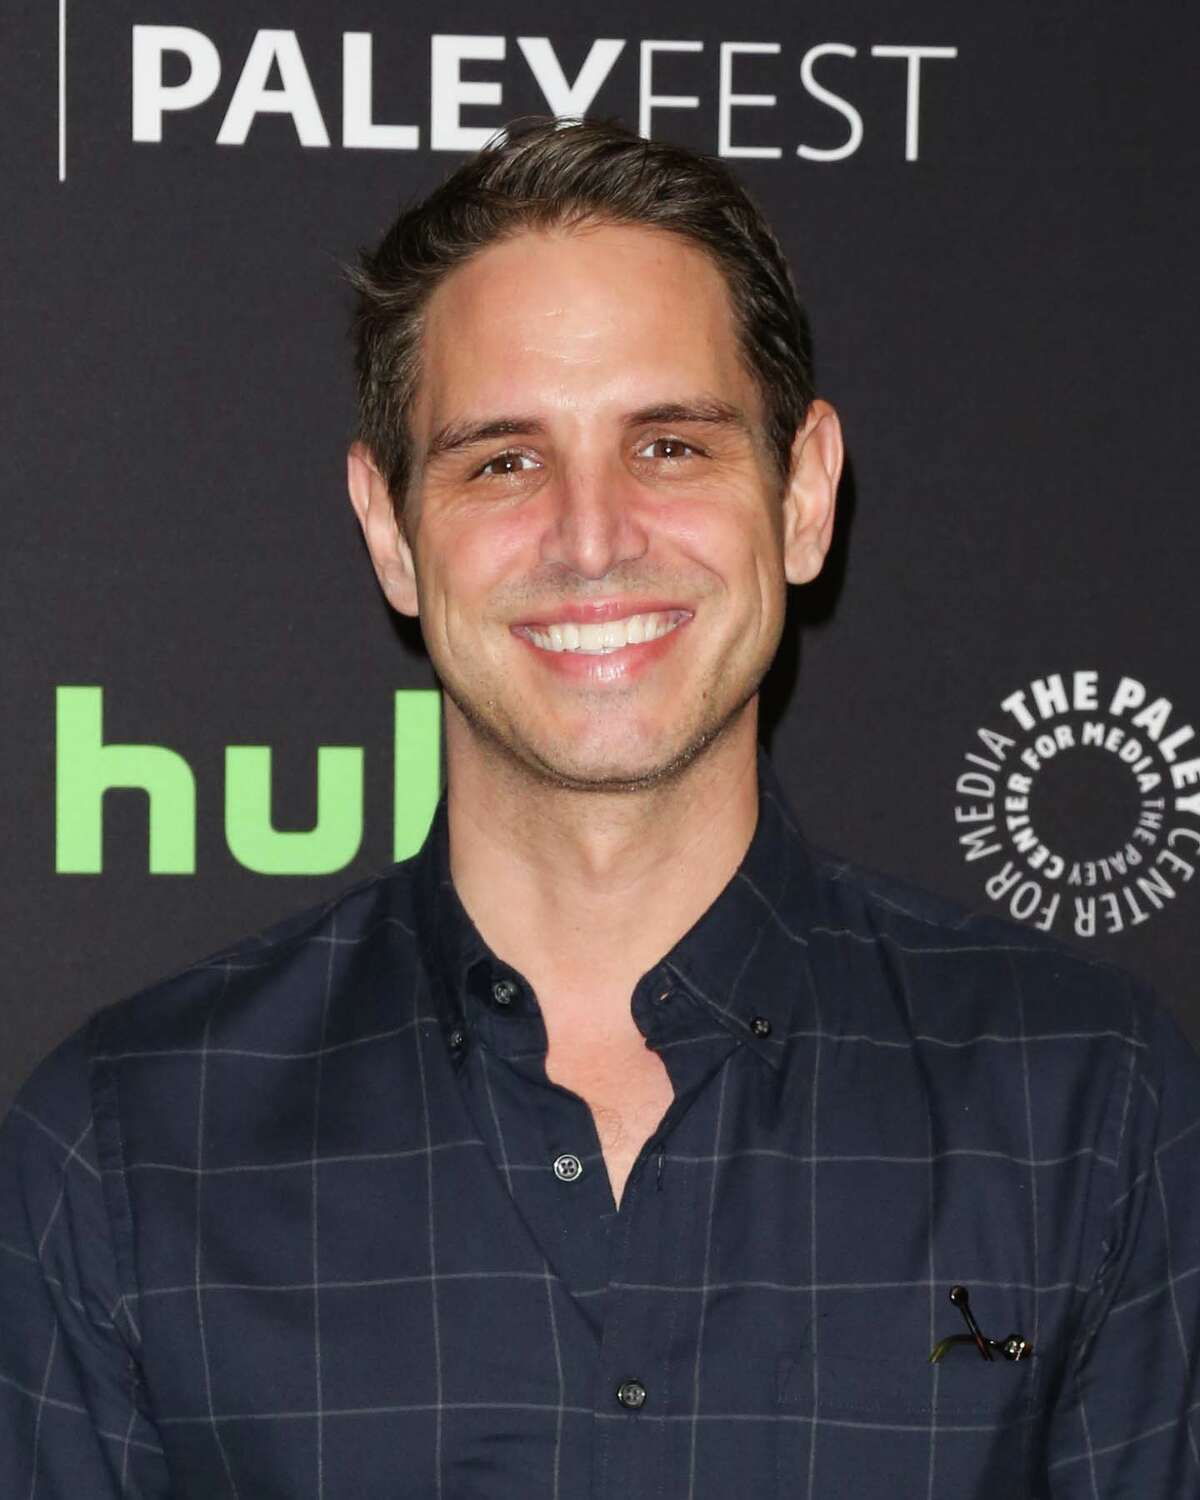 20. Greg Berlanti, Actor See the LGBTQ personalities that made it to the top 20 of OUT magazine's '10th Annual Power List'...